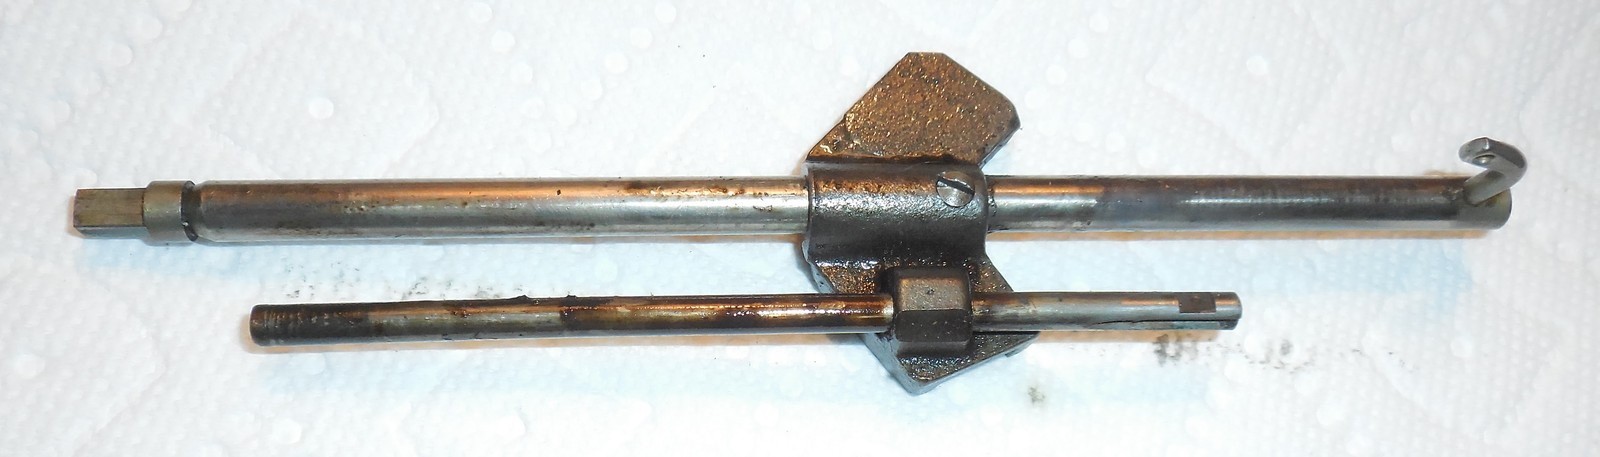 New Home Greyhound Model 30 VS Needle Bar w/Thread Guide, Actuator Bar & Guide - $15.00